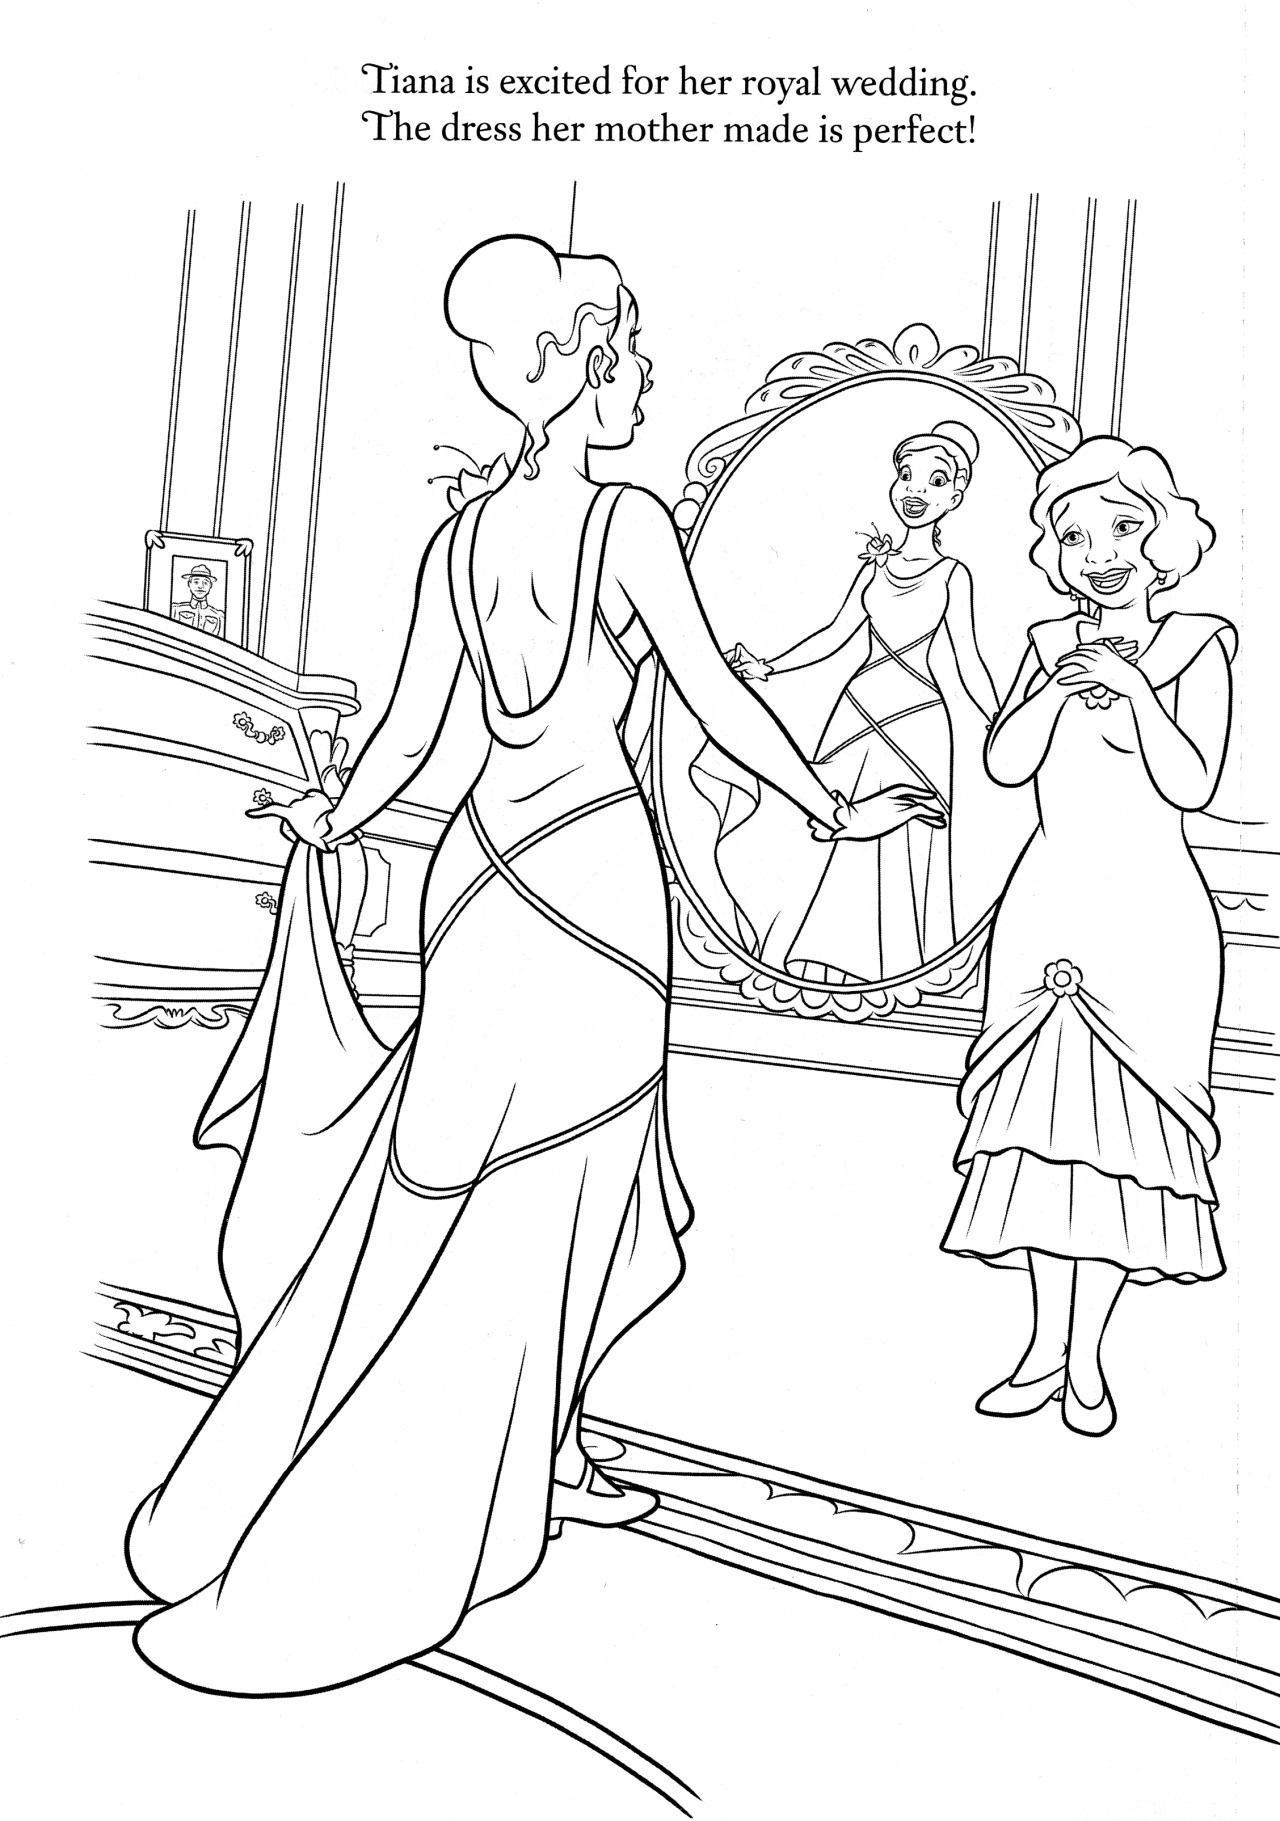 Princess and the Frog, Coloring Pages  Disney coloring pages